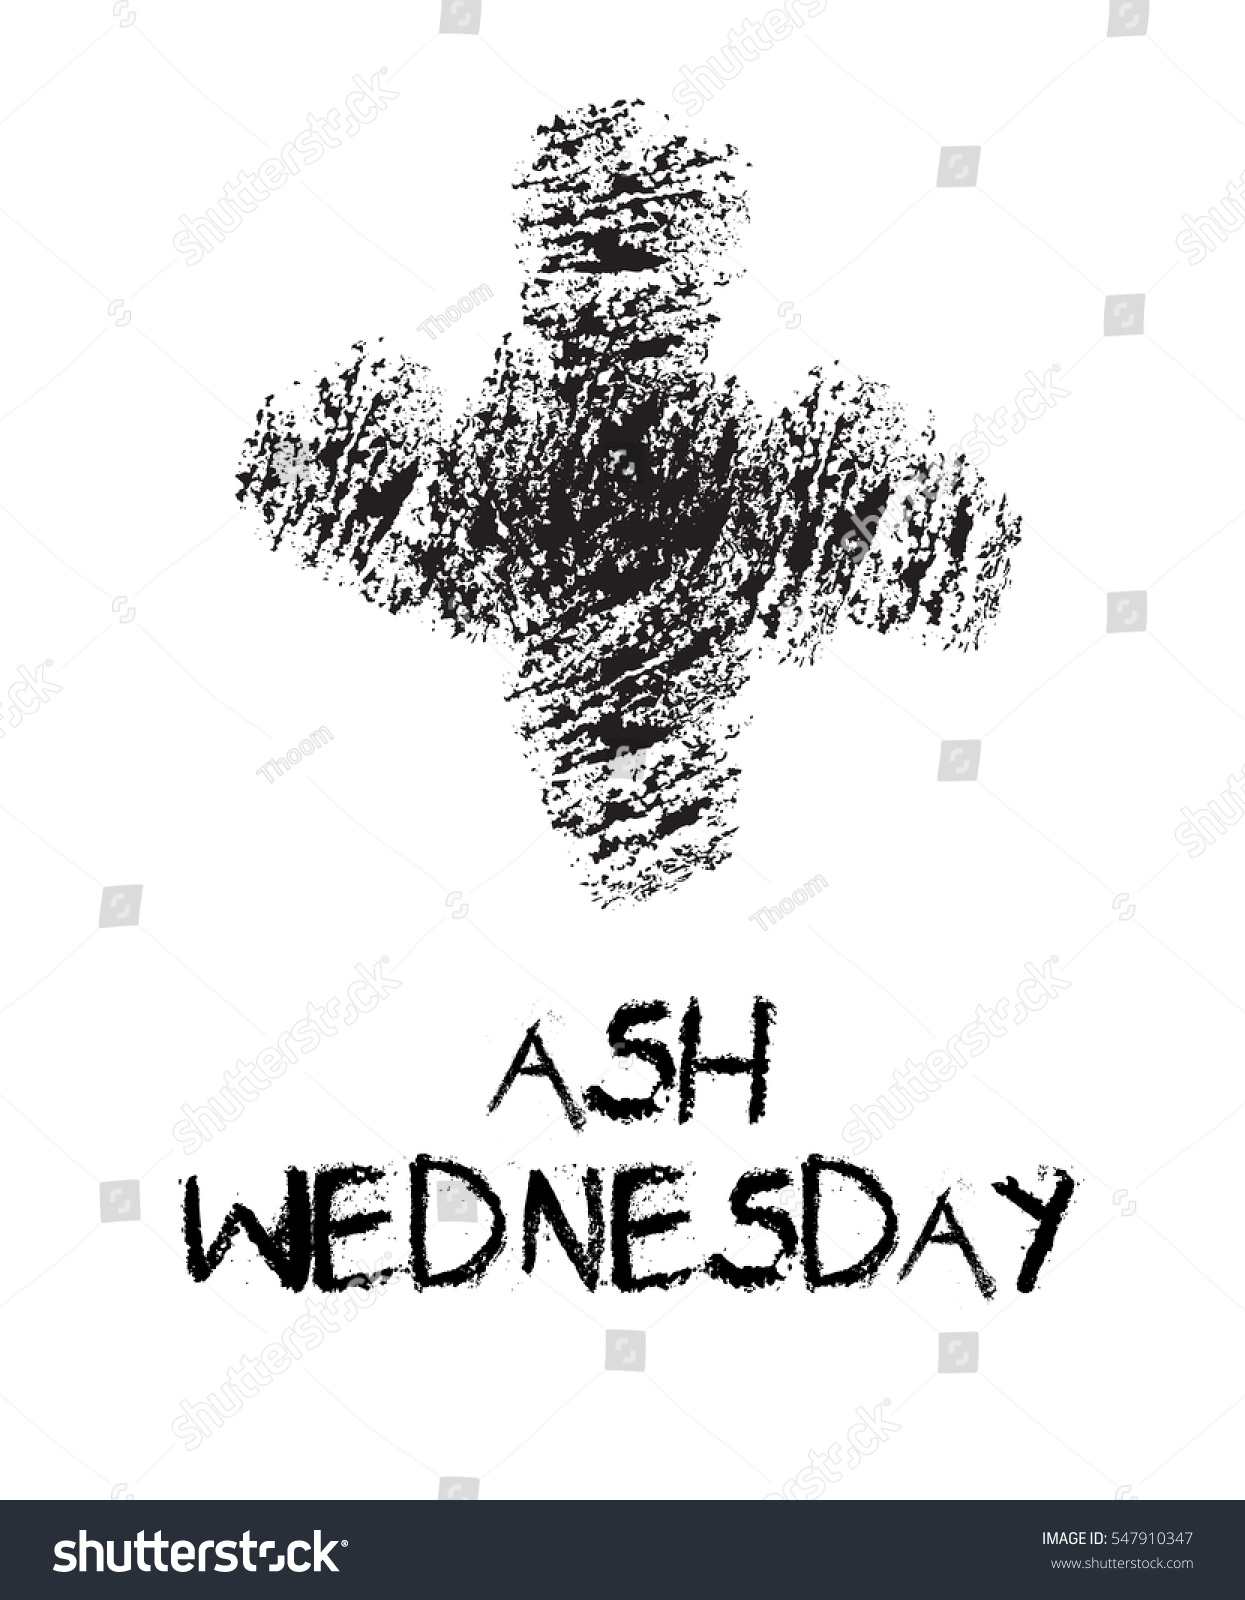 Symbols for ash wednesday images symbol and sign ideas ash wednesday abstract symbolic religious christian stock vector ash wednesday abstract symbolic religious christian symbol for biocorpaavc